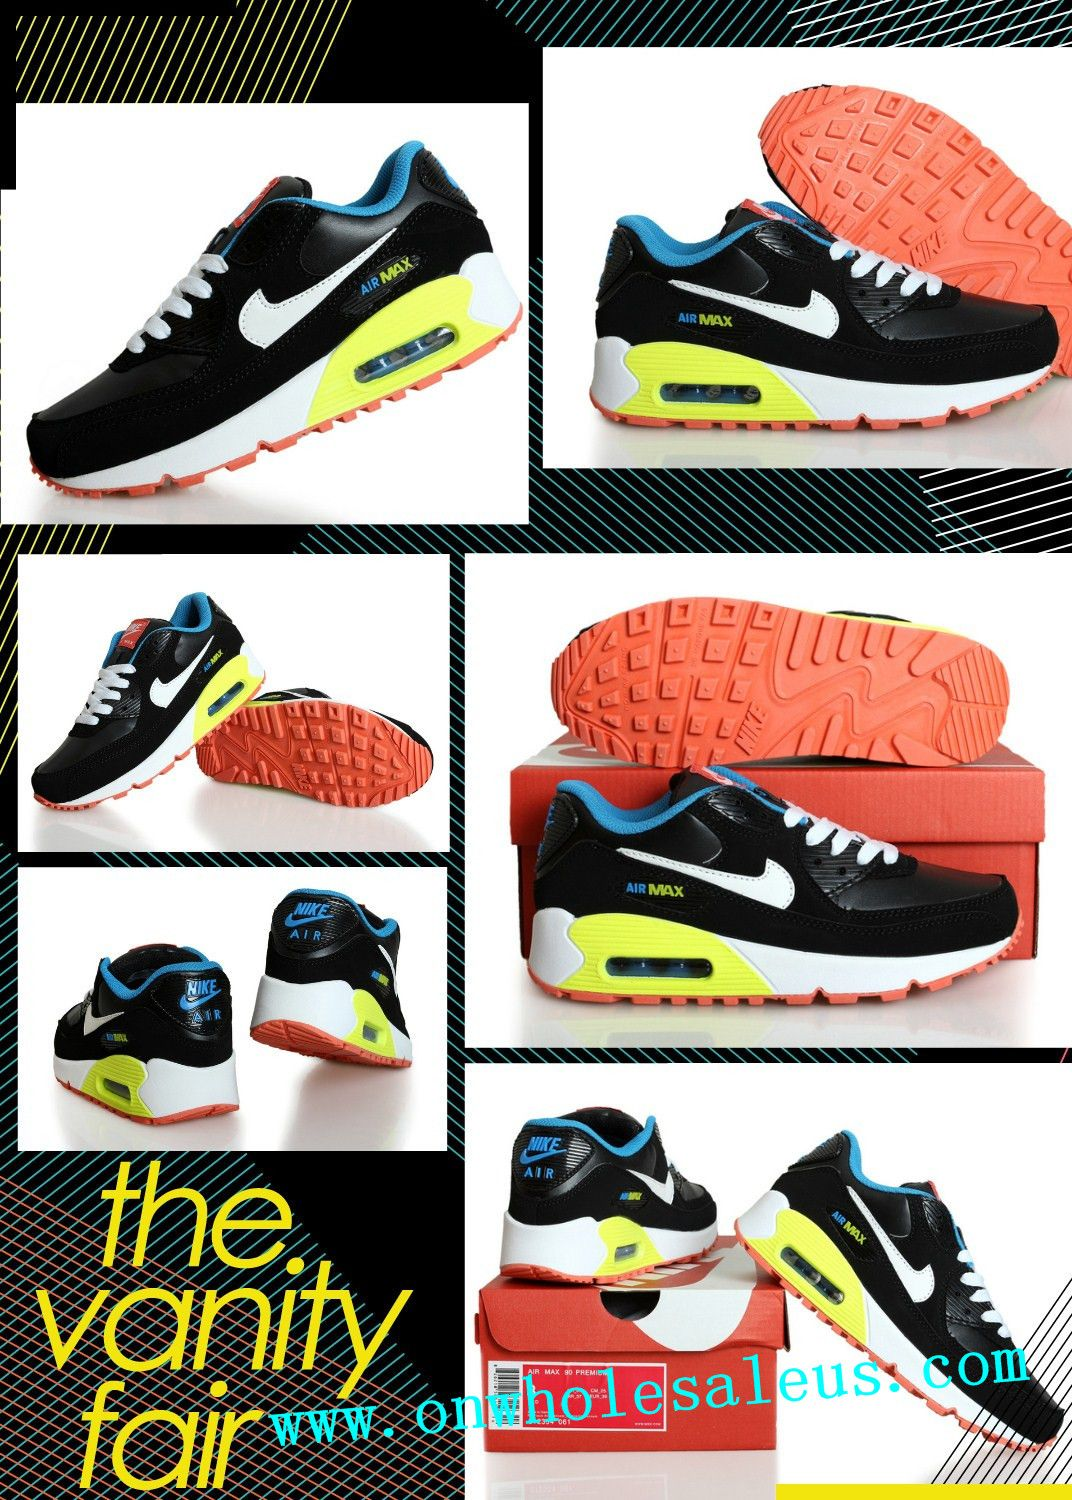 pretty nice 50ab3 2ab4d 2014 cheap nike air max 90 mens Women sBlack and white yellow for sale  39  size us5.5-us12